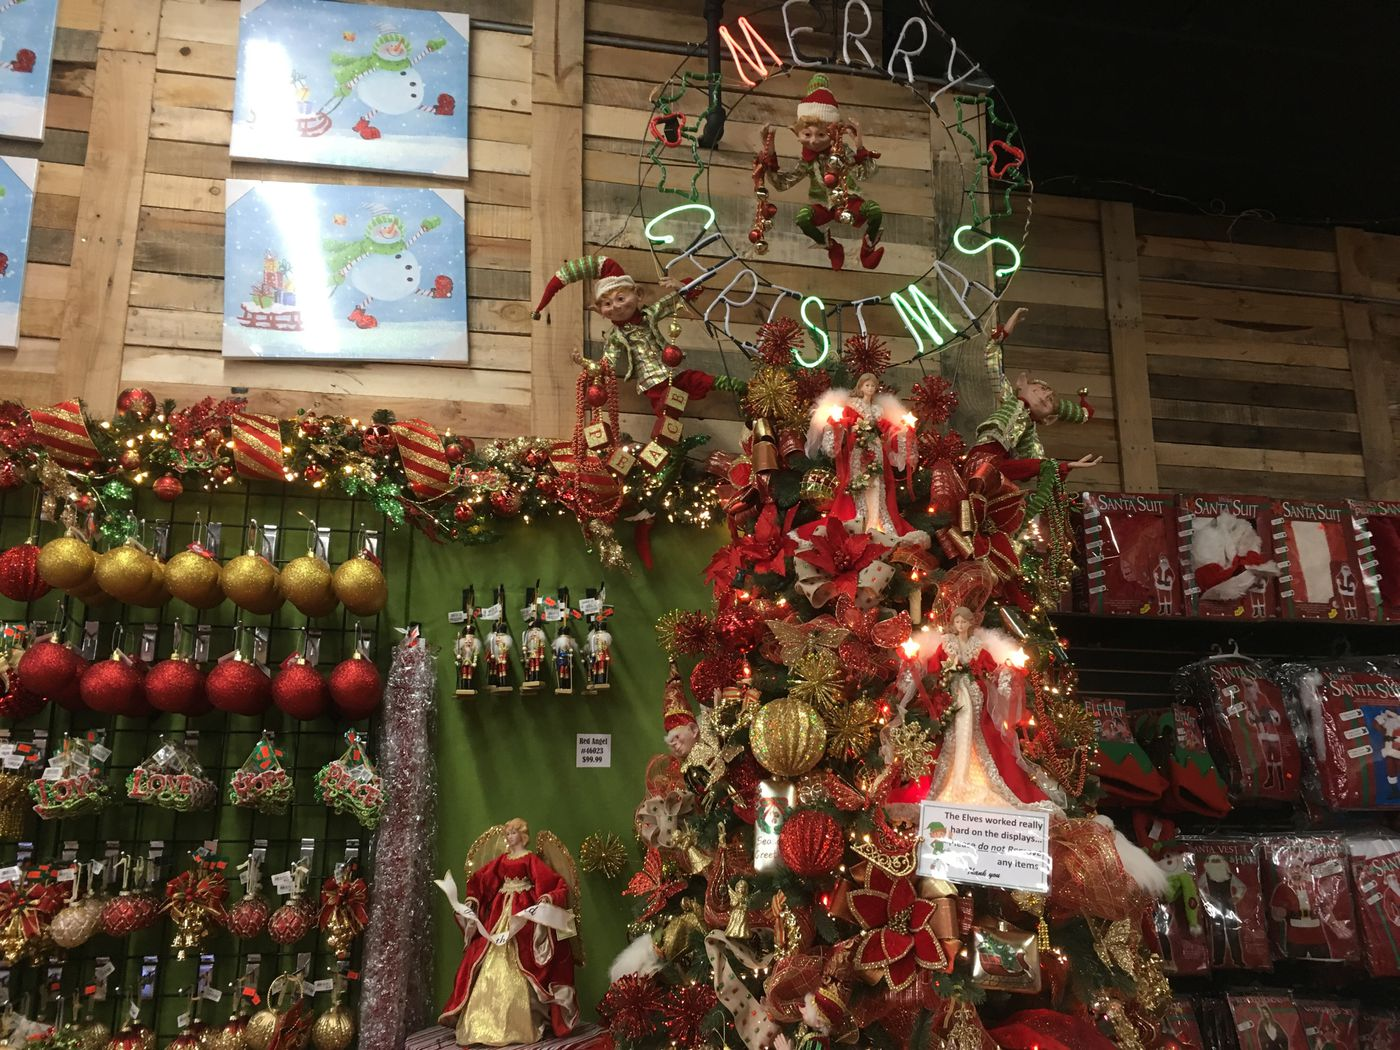 b9278ea614c7b Christmas decoration rentals: a new holiday tradition - Vox